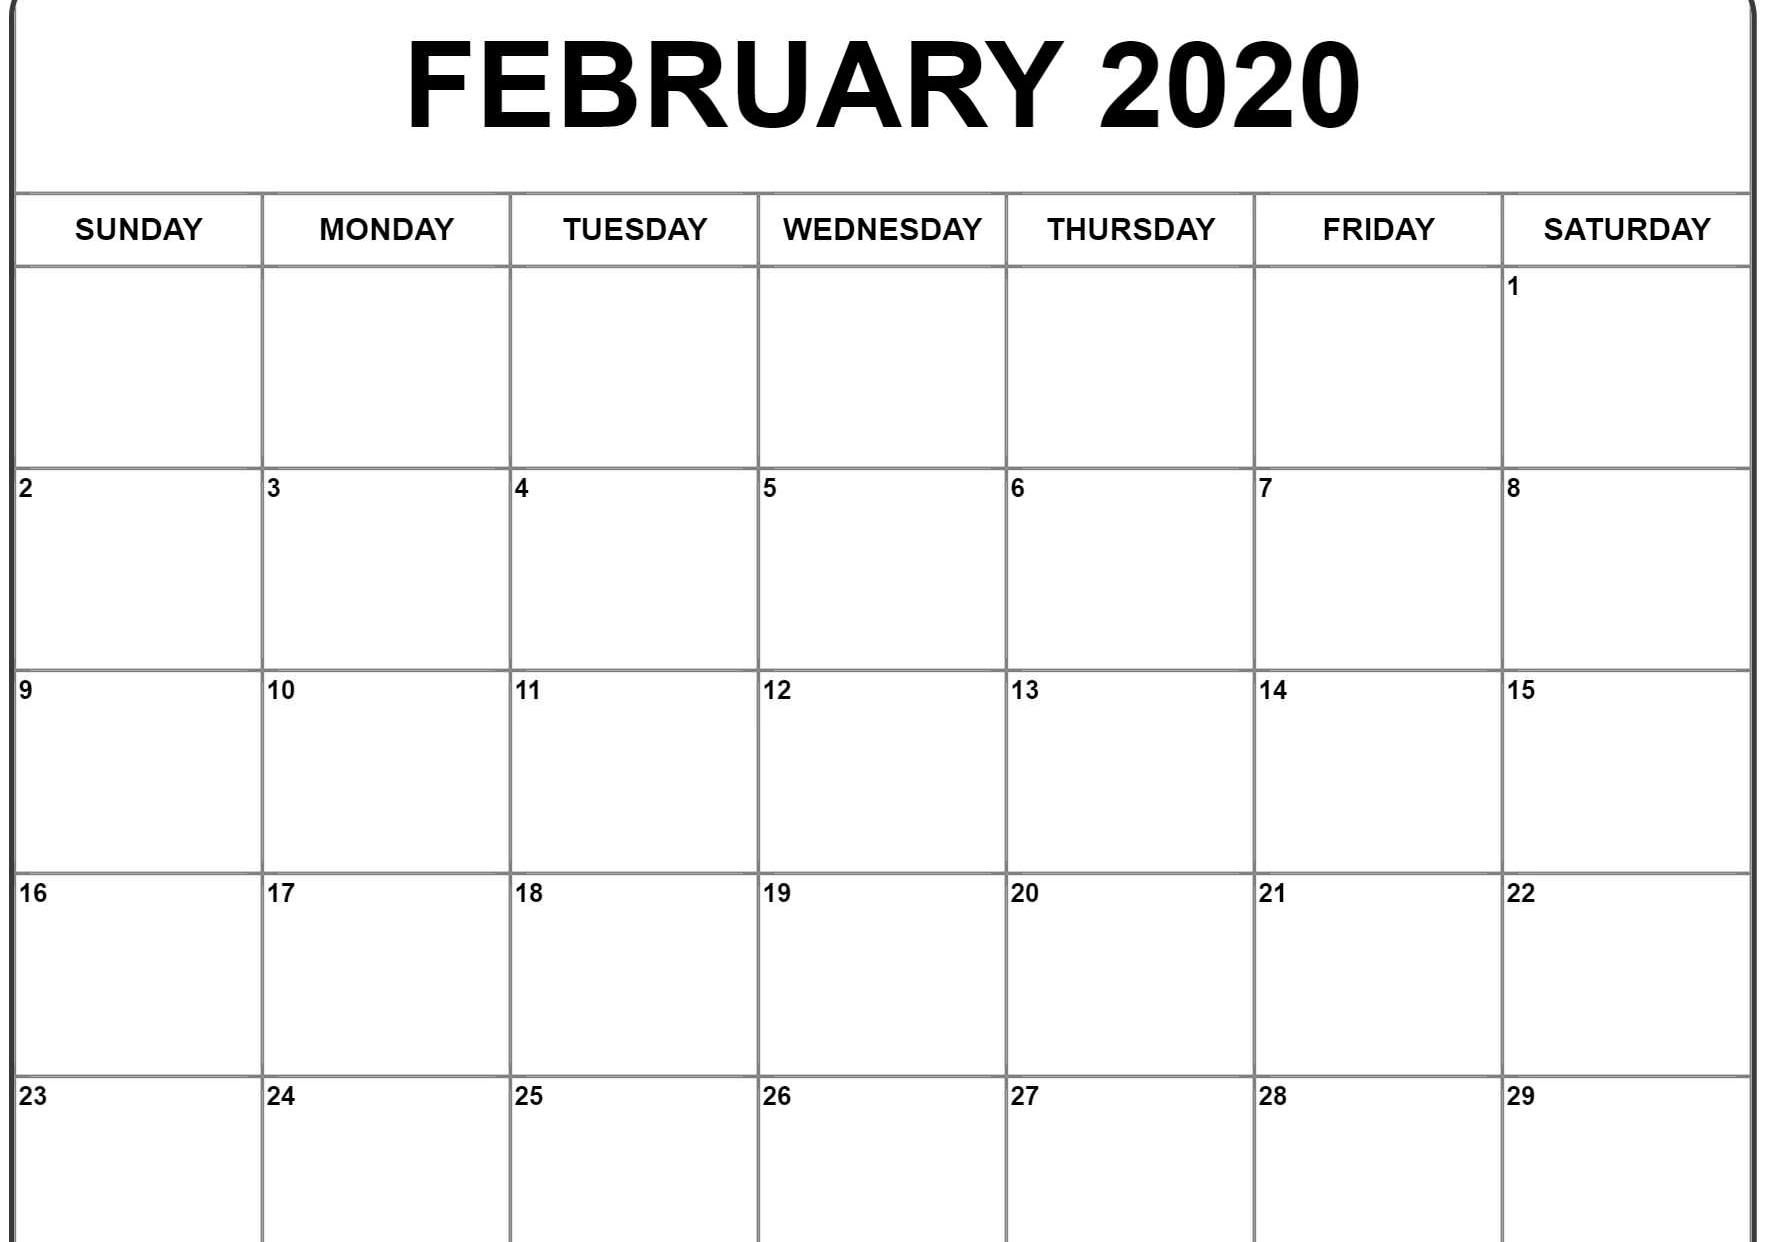 February 2020 Calendar Excel | Monthly Calendar Template in February 2020 Calender That I Can Fill In